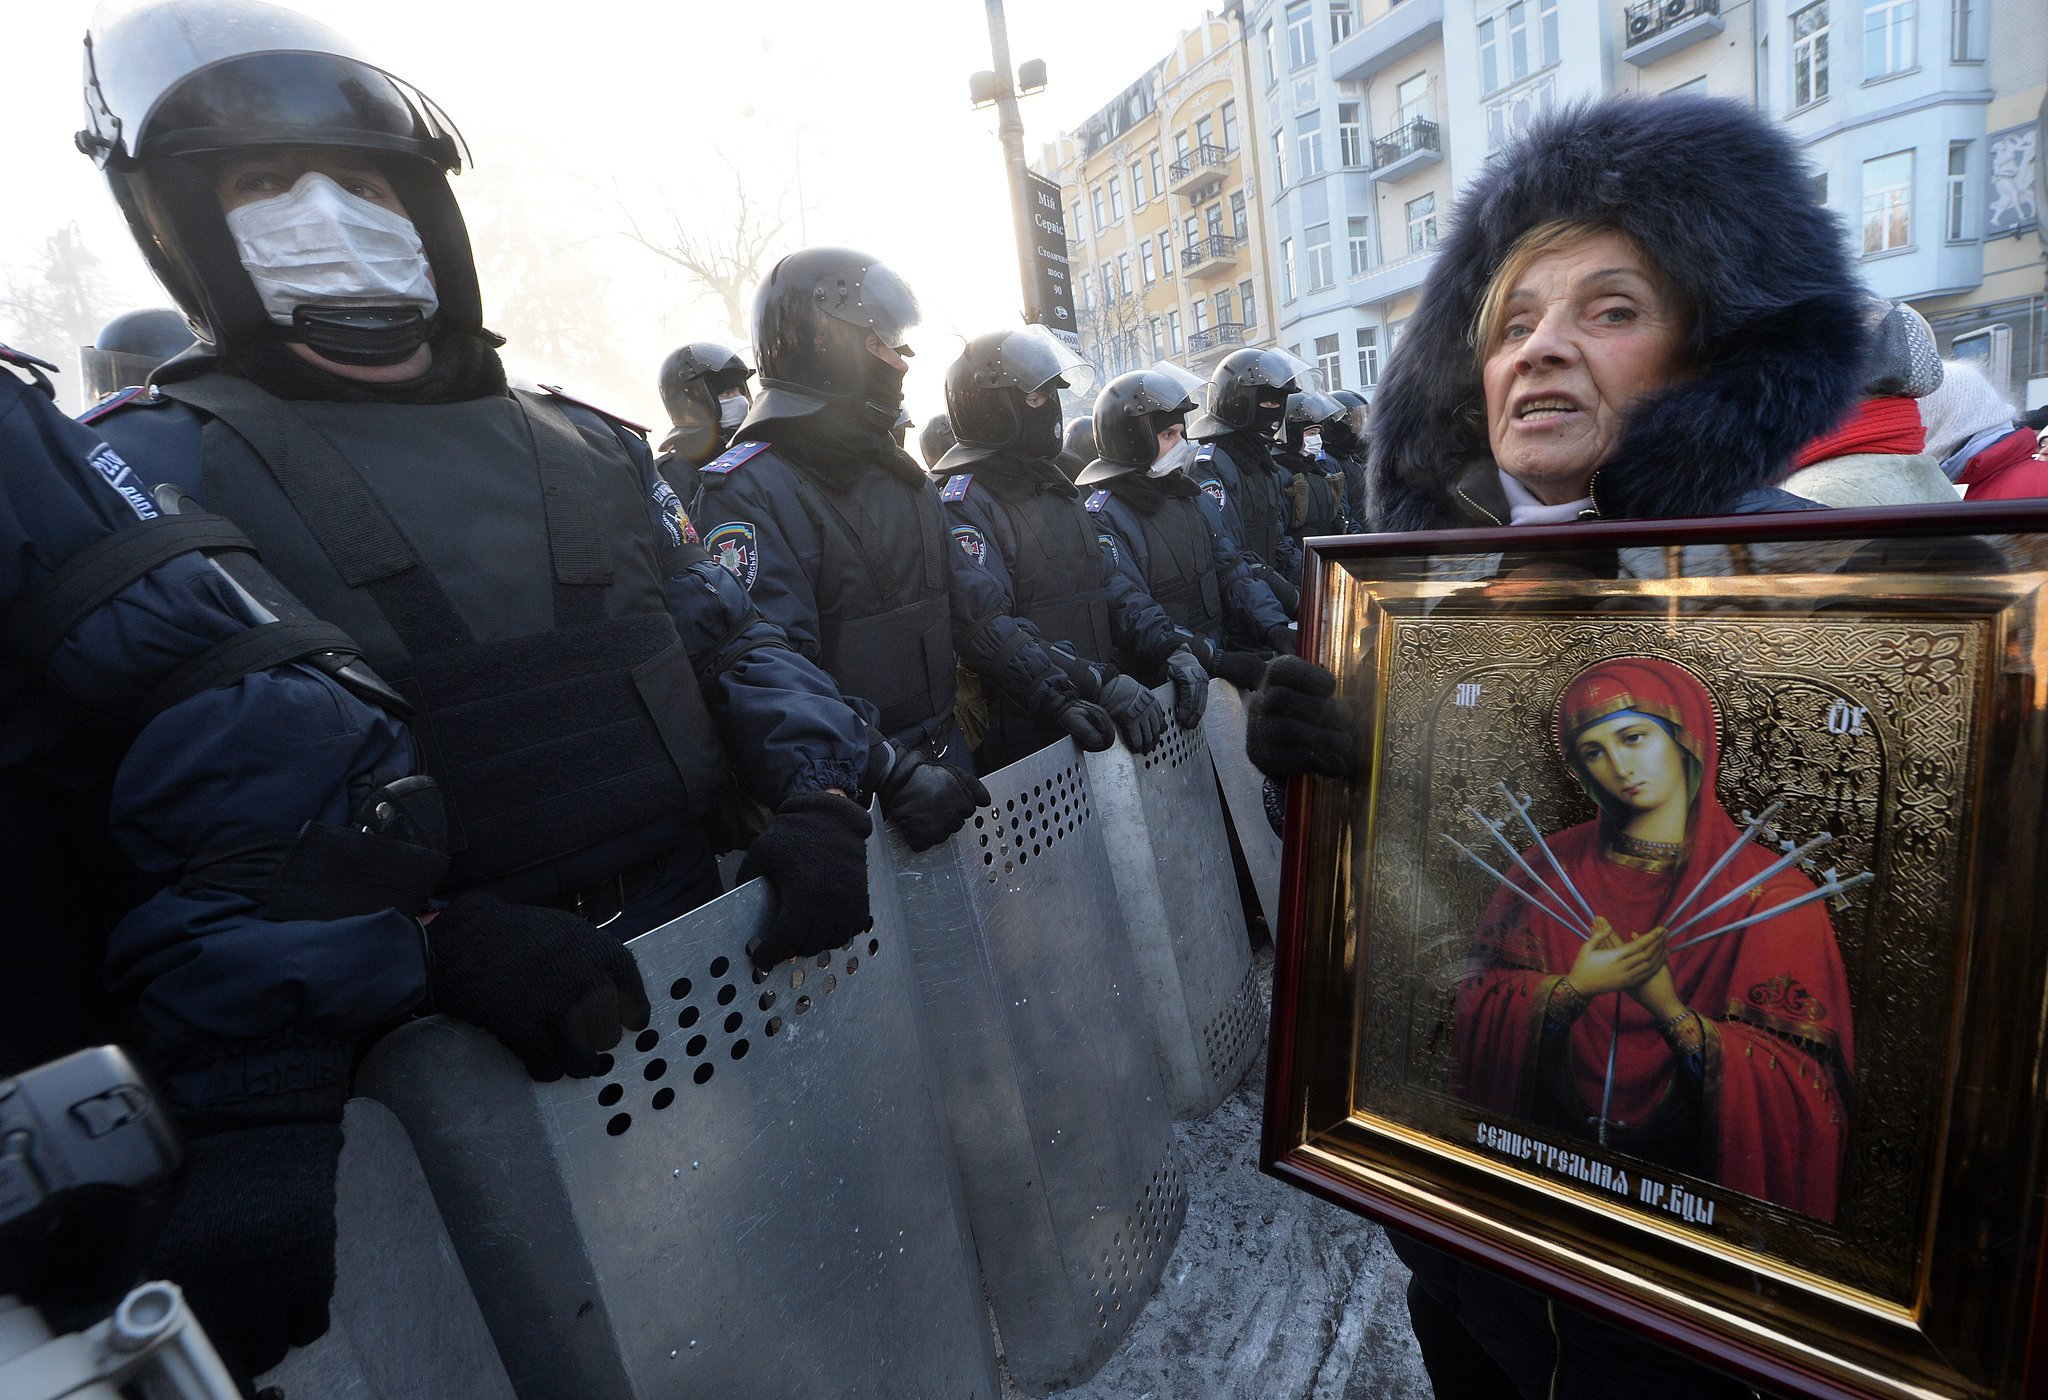 One woman held up a religious image while standing in front of riot police in Kiev.